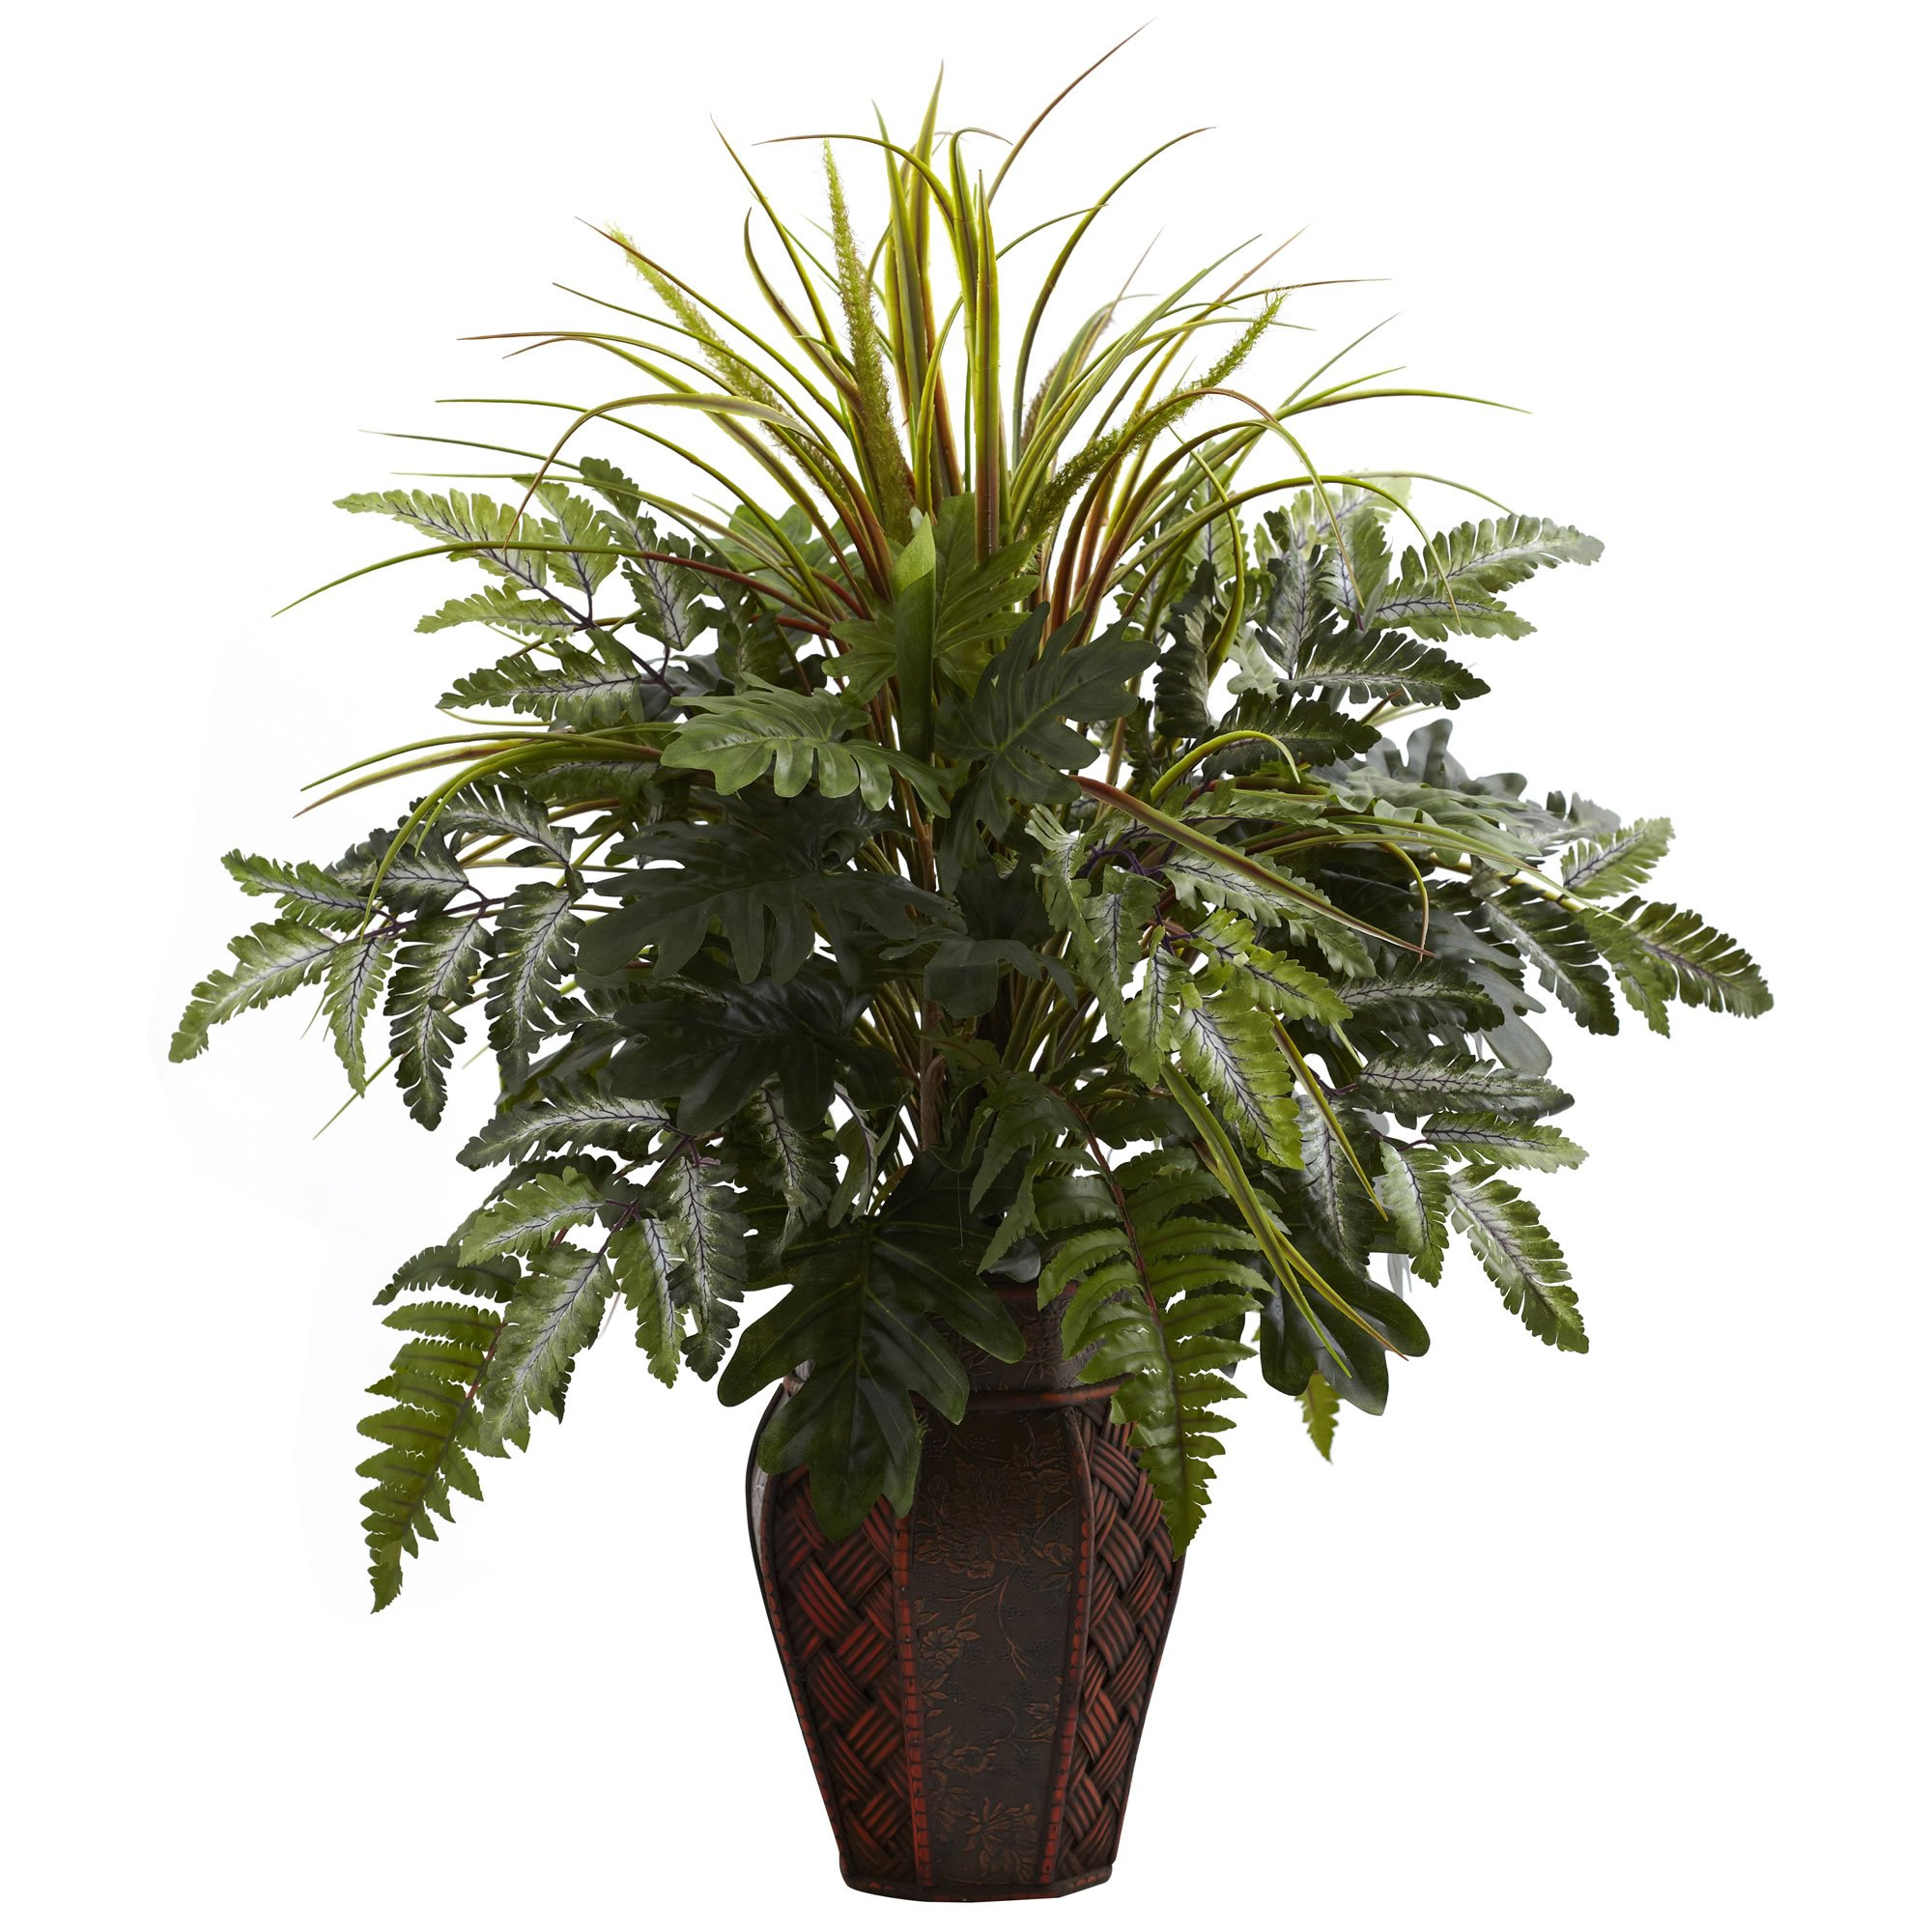 Nearly Natural 6754 Mixed Grass and Fern with Decorative Planter, Green